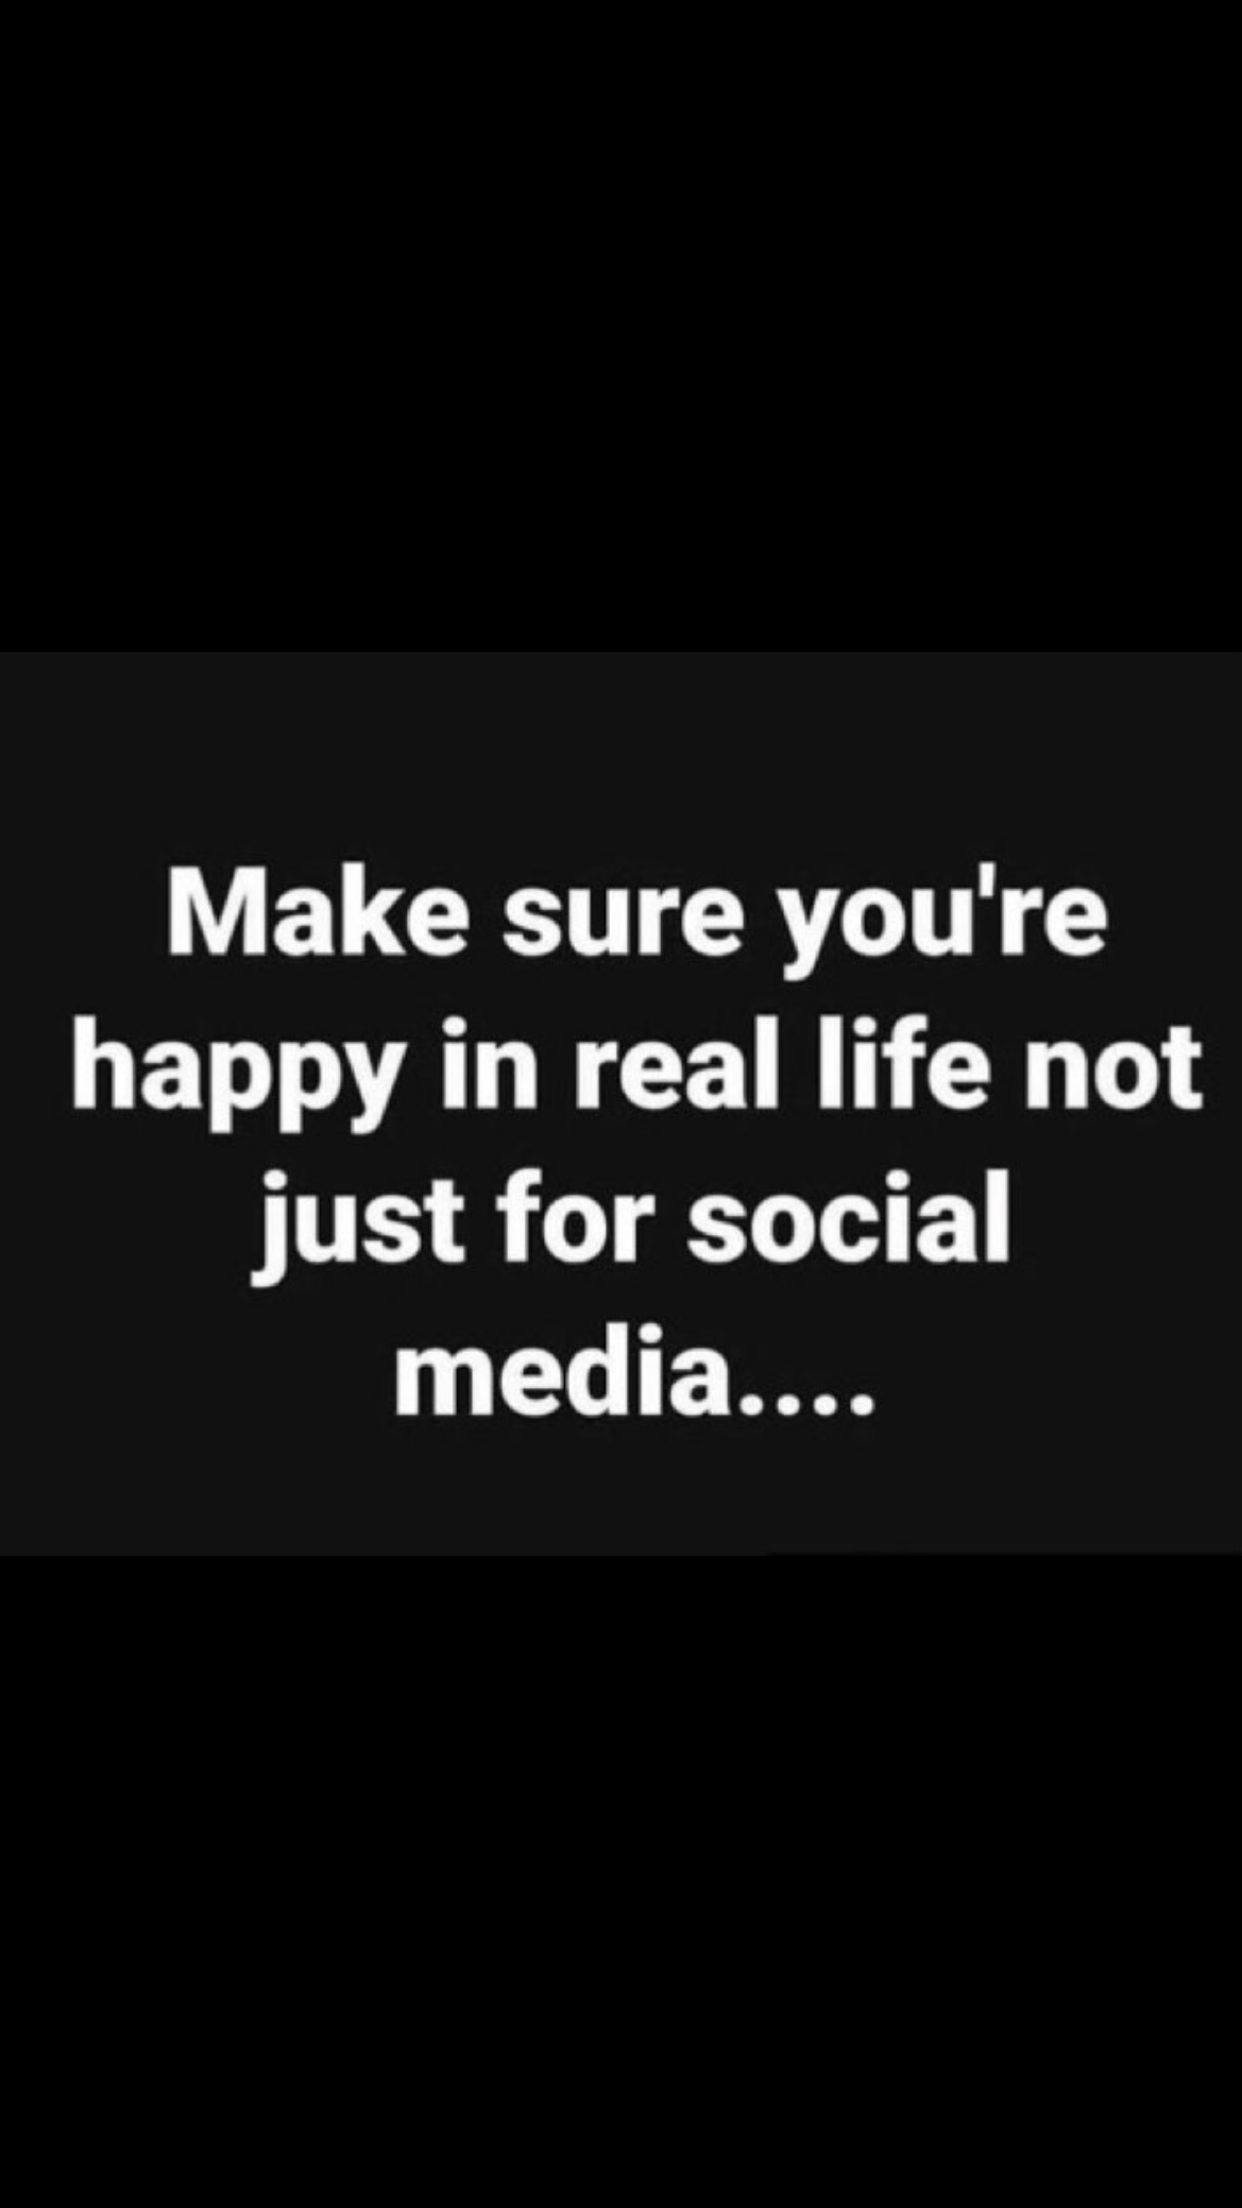 Amen People Take Social Media Way Too Seriously And Let It Social Media Quotes Truths Social Media Quotes Inspirational Quotes